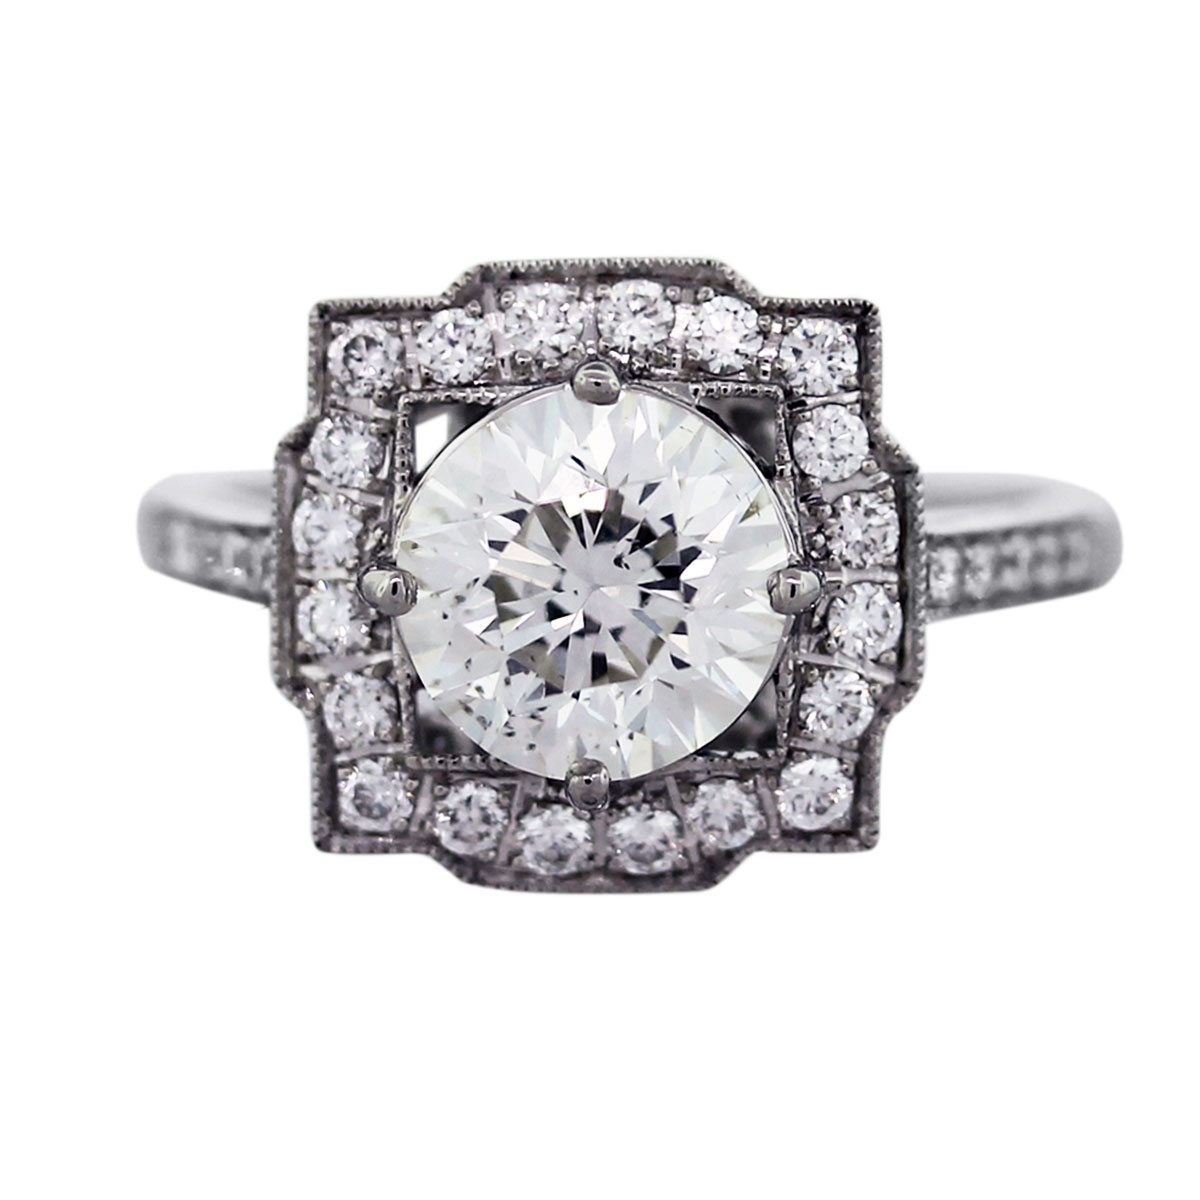 The Newest Trend: Art Deco & Vintage Style Engagement Rings Throughout Most Recent Diamond Art Deco Vintage Style Anniversary Bands (View 11 of 15)